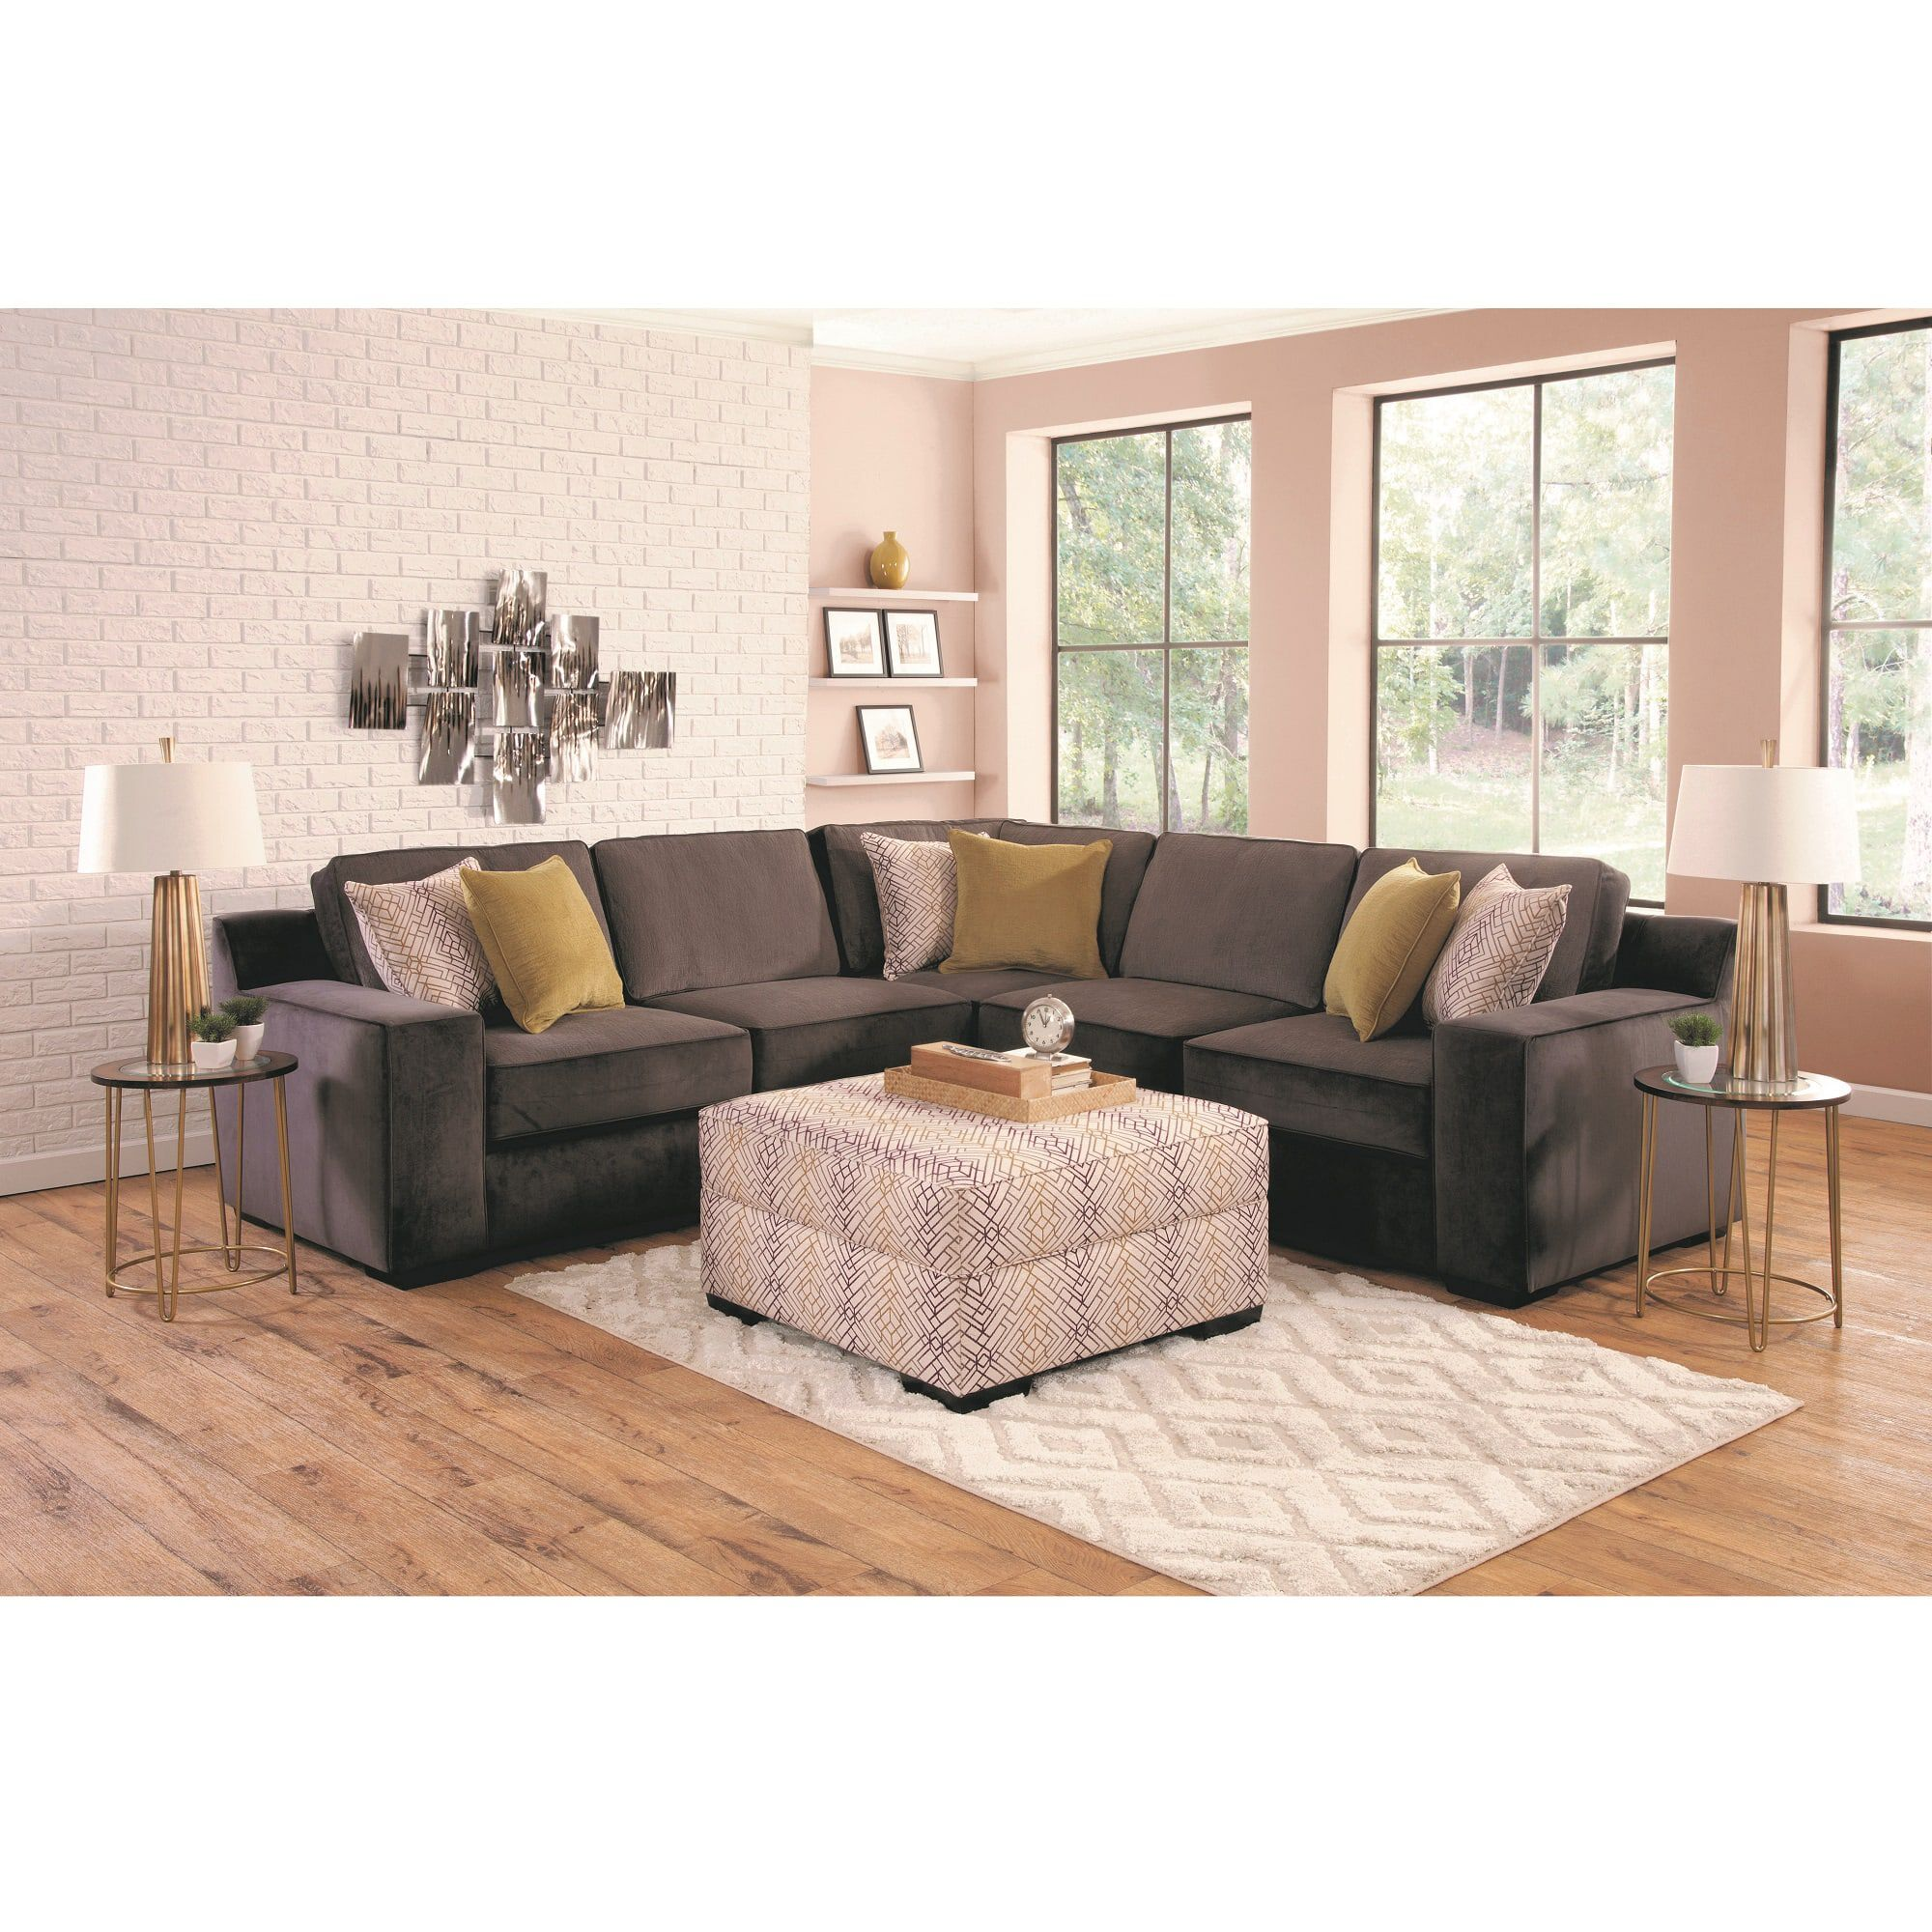 8 Piece Sonja Living Room Collection With Ottoman